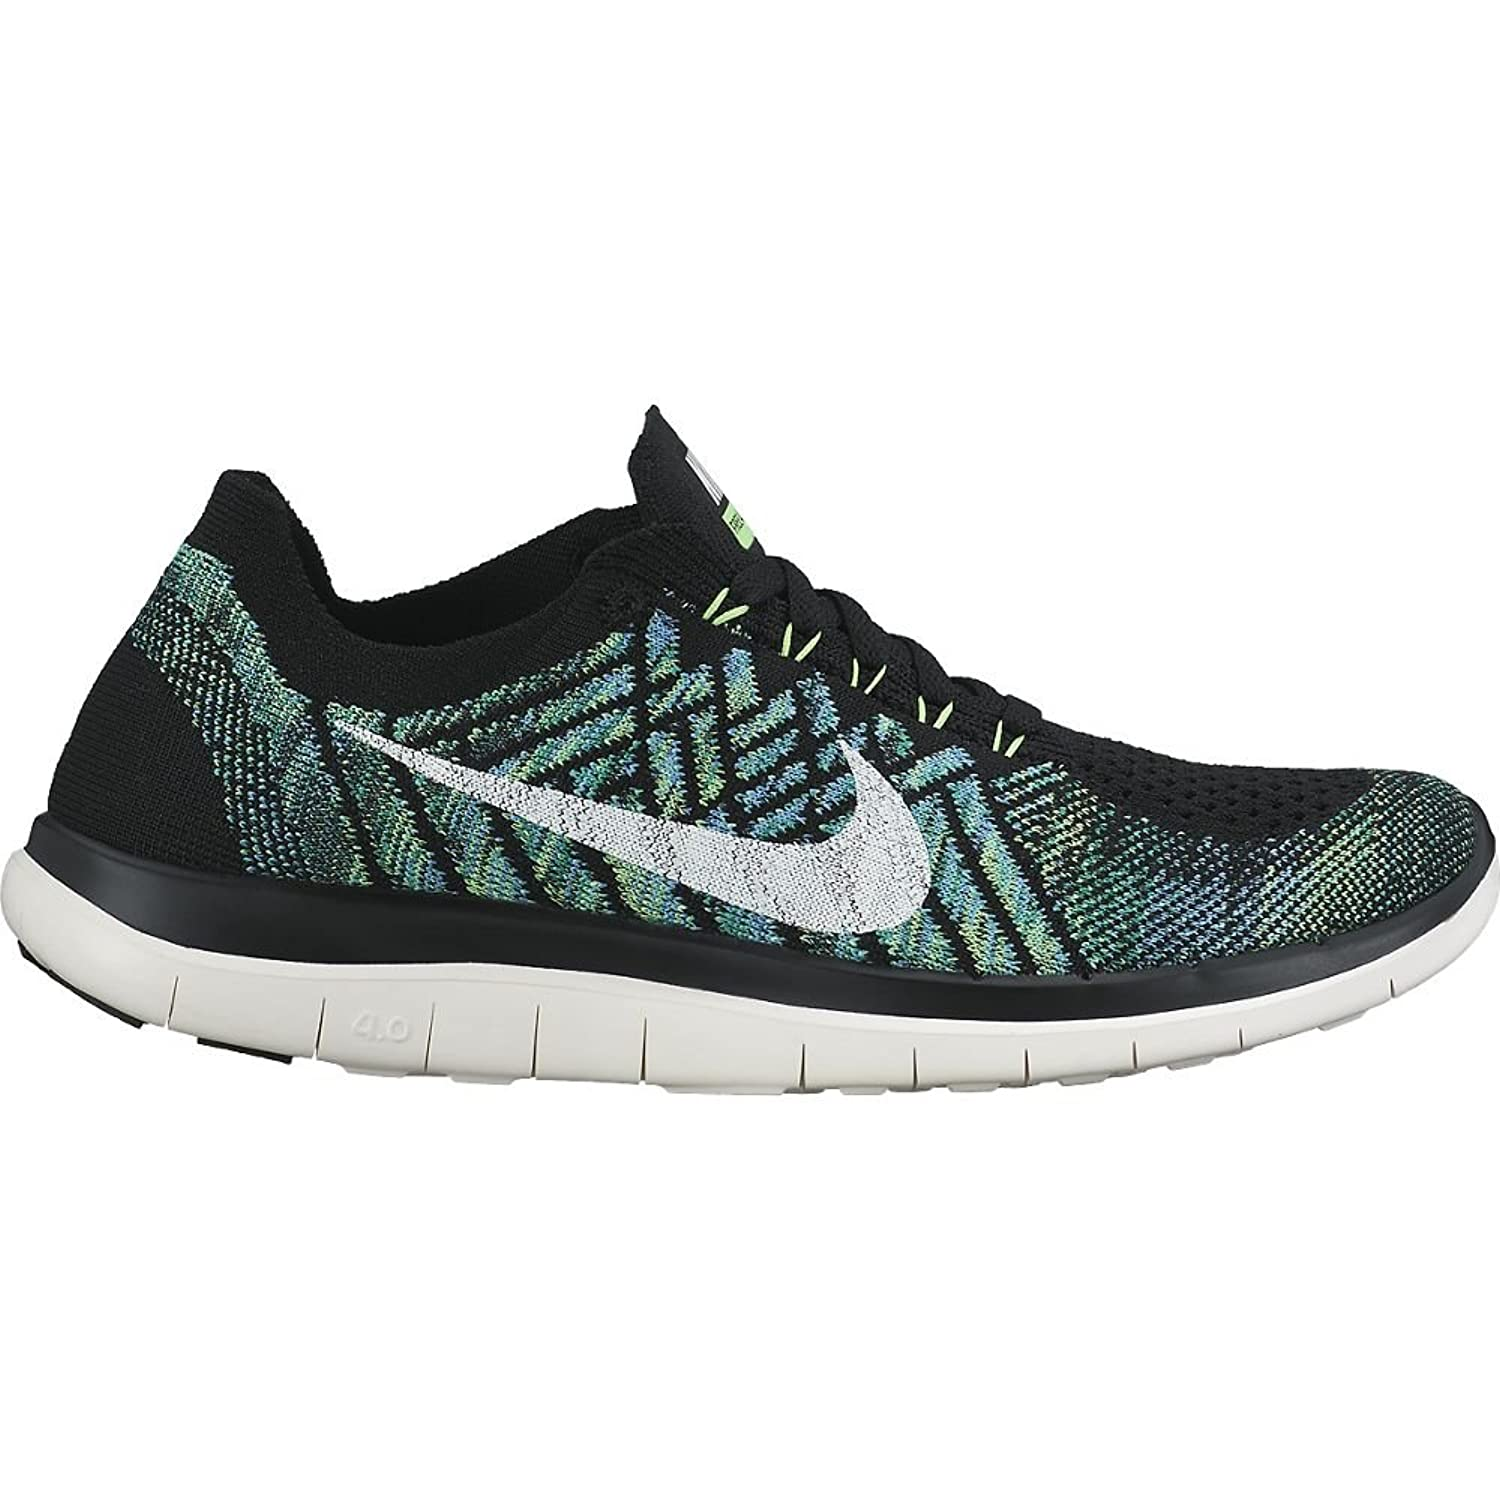 Nike Free 4.0 Flyknit Womens Running Shoes Black